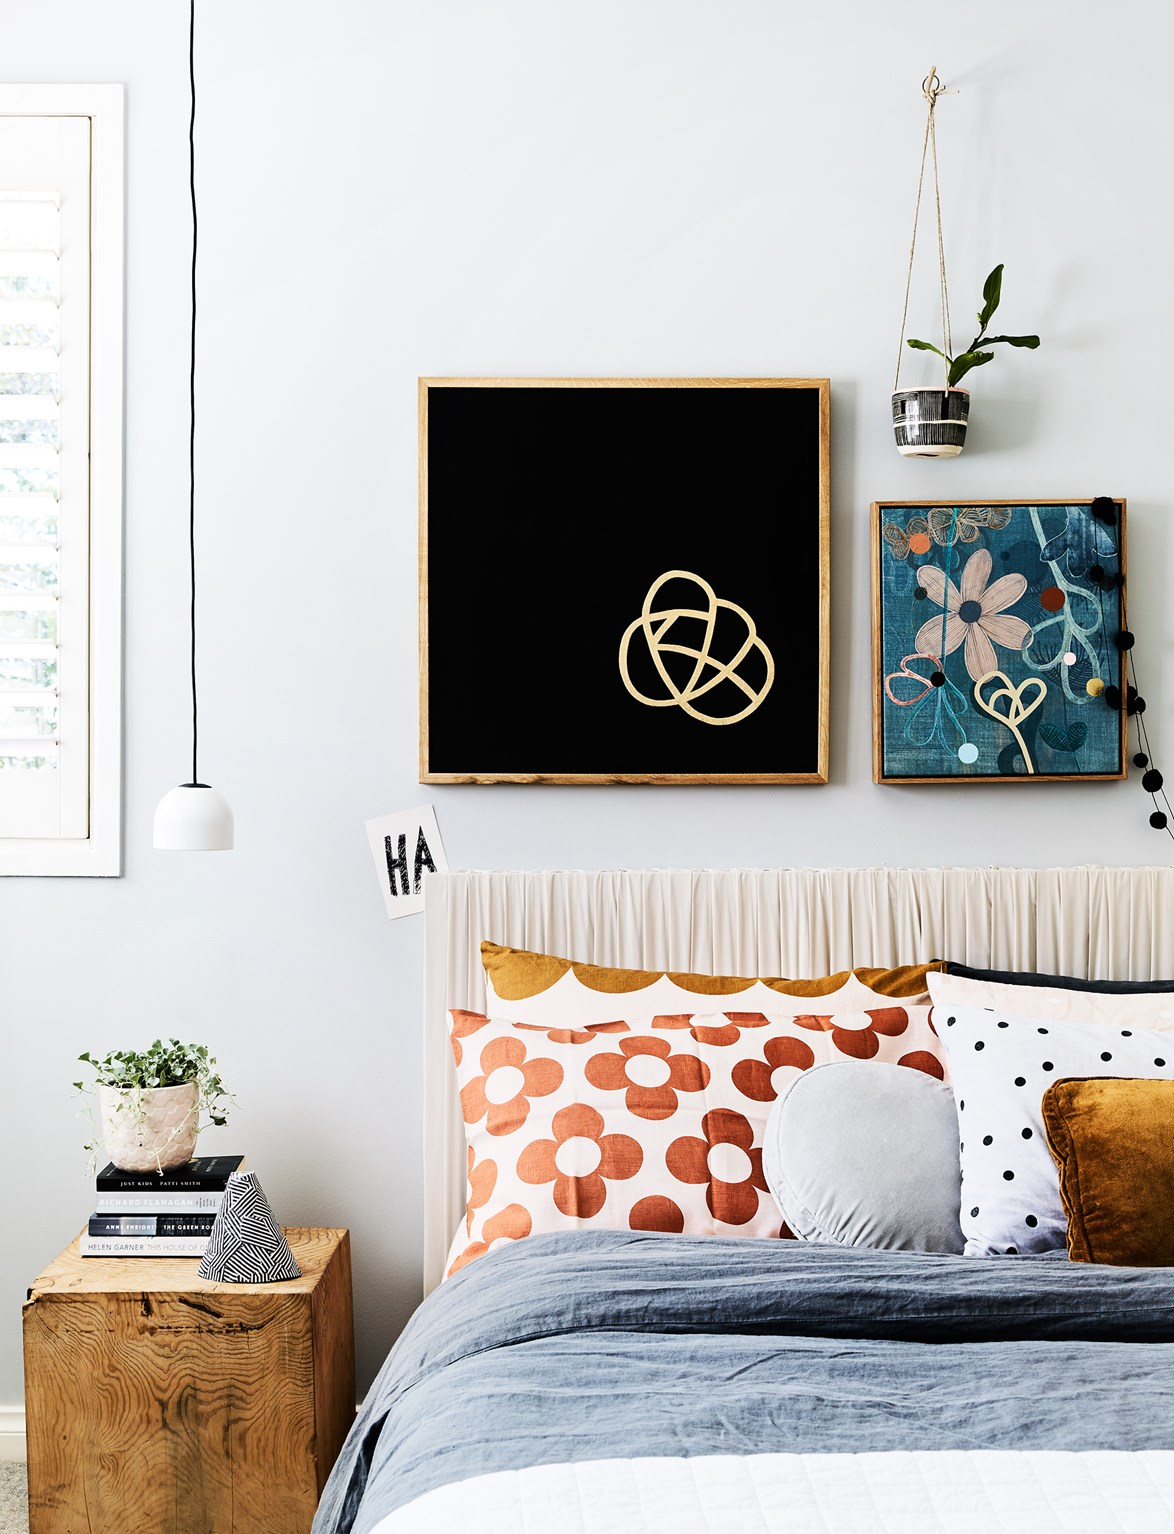 Paintings and pillowcases are a simple and noncommittal way to add pattern and print to a room. *Photo:* Sharyn Cairns